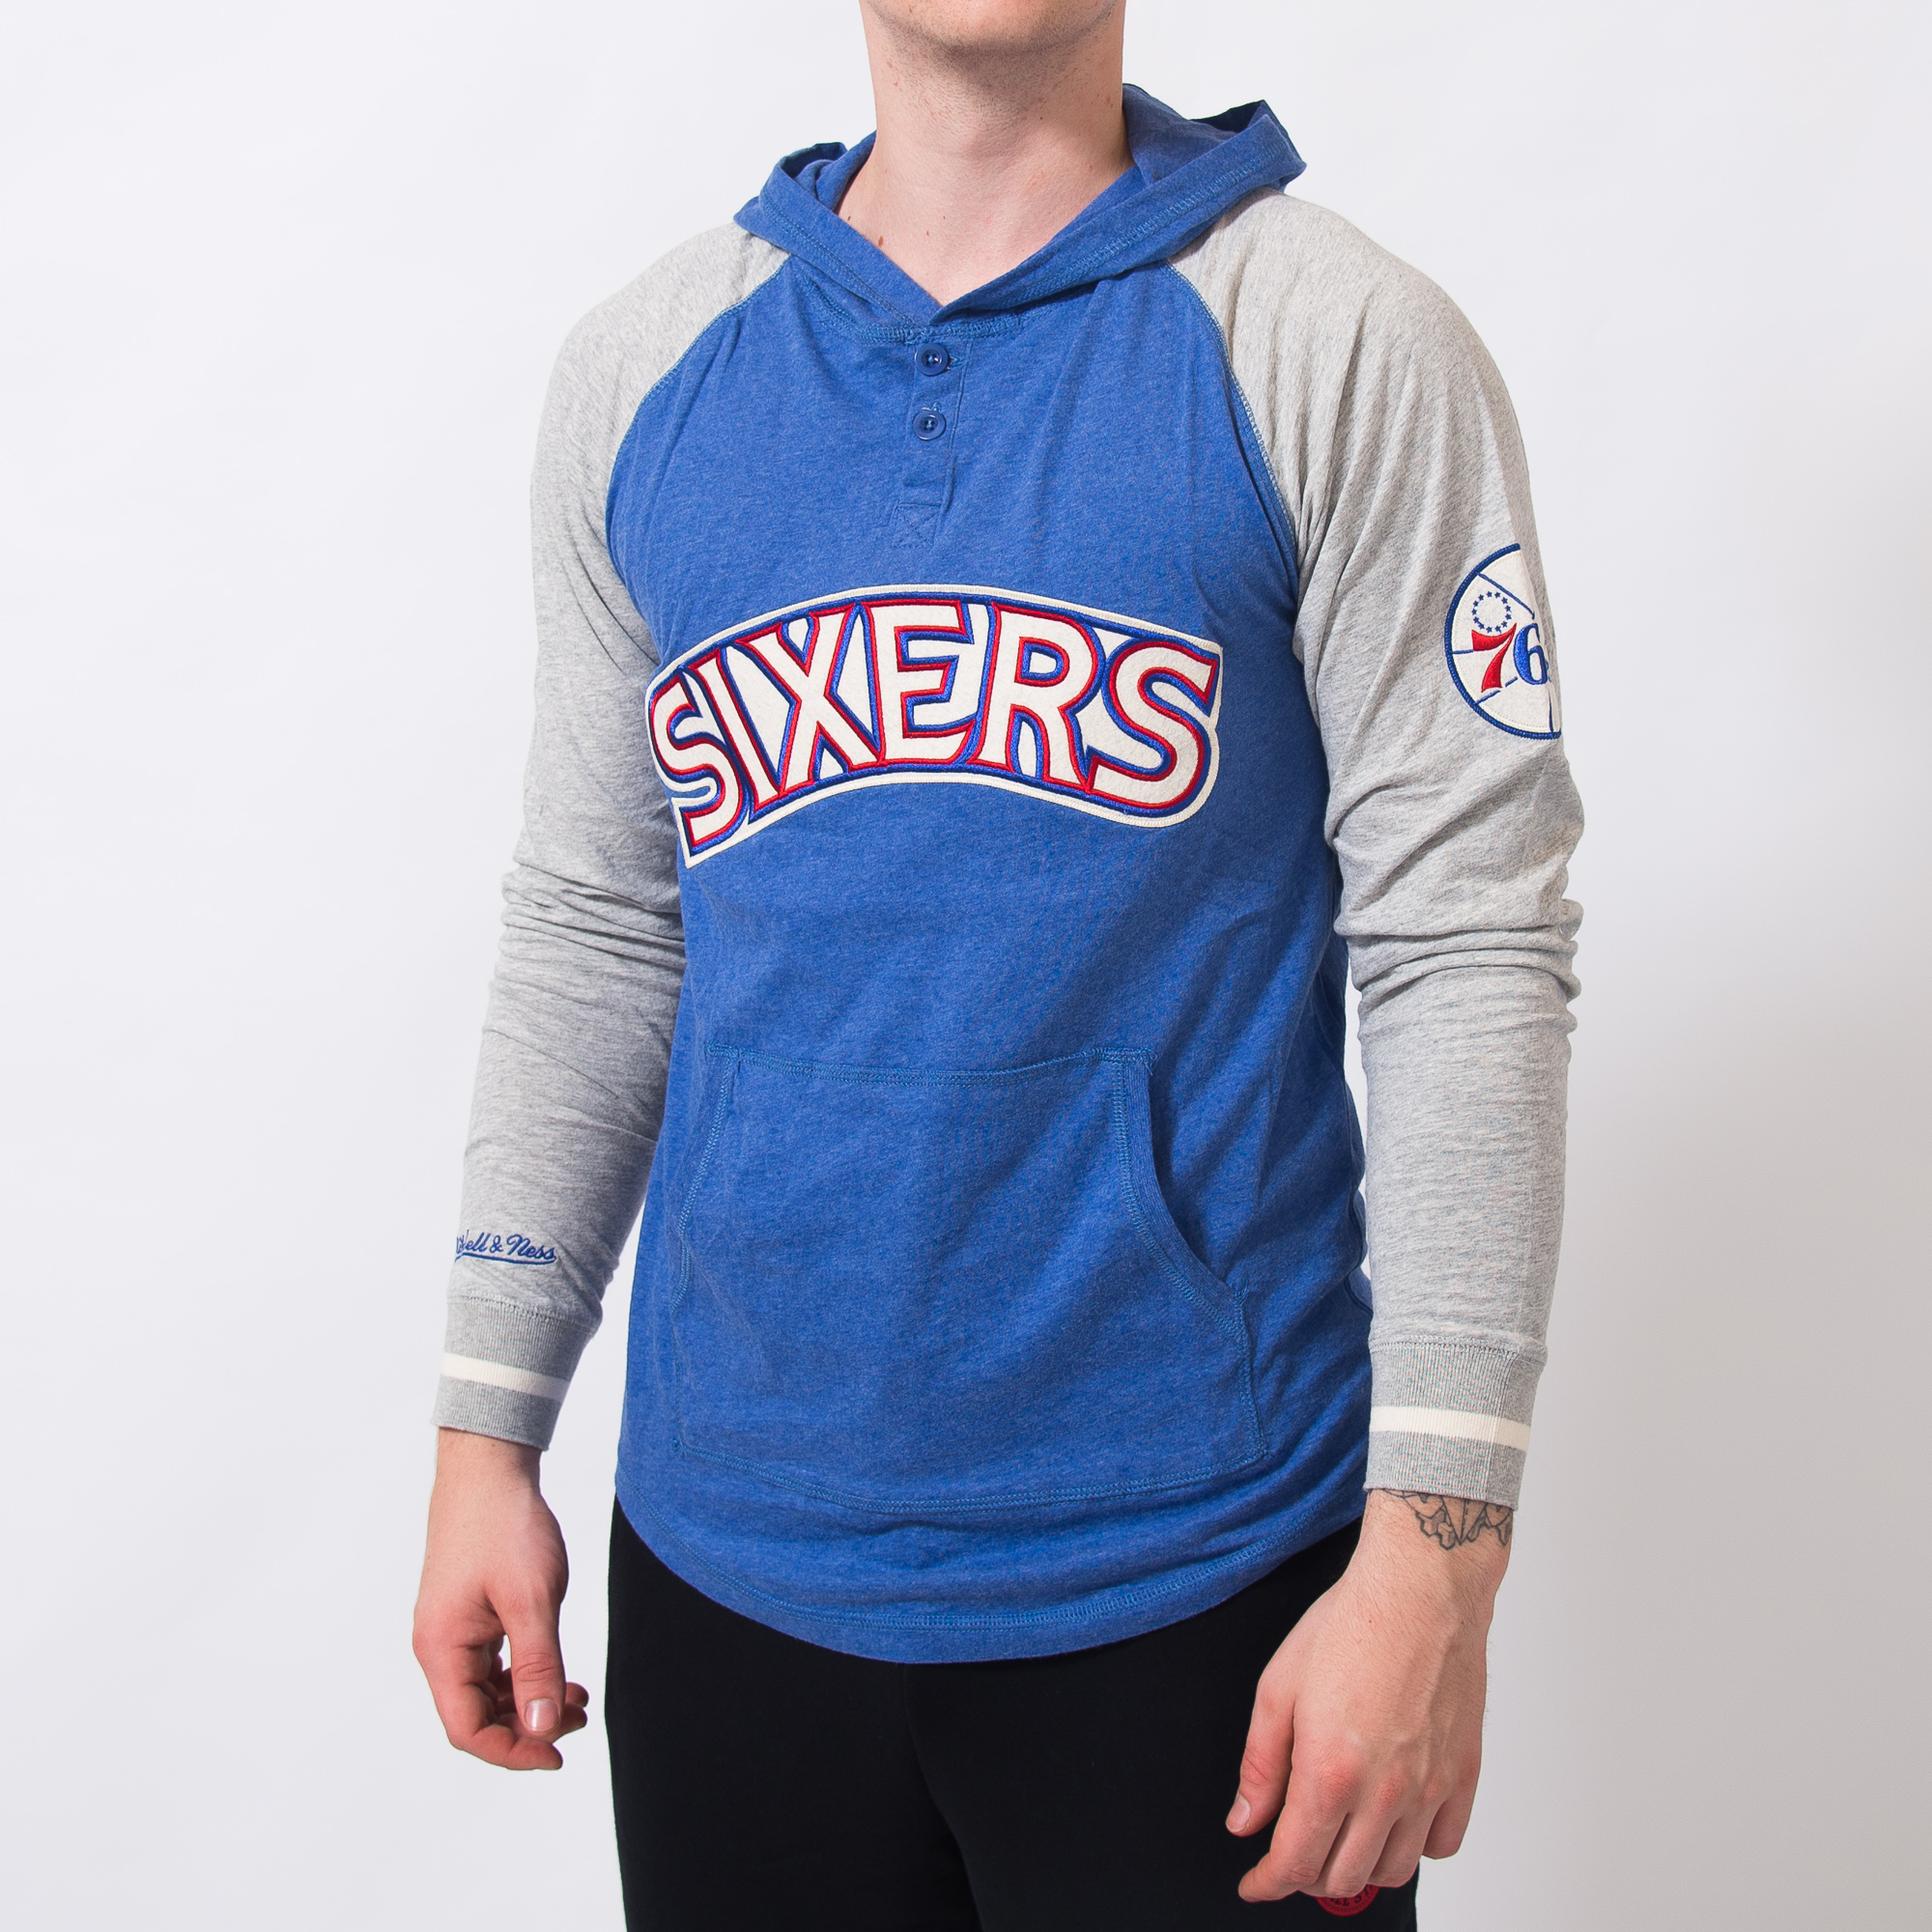 2247646ec28 Mitchell & Ness NBA Philadelphia 76ers Slugfest Lightweight Hoody - NBA  Shop Philadelphia 76ers Merchandise - Superfanas.lt